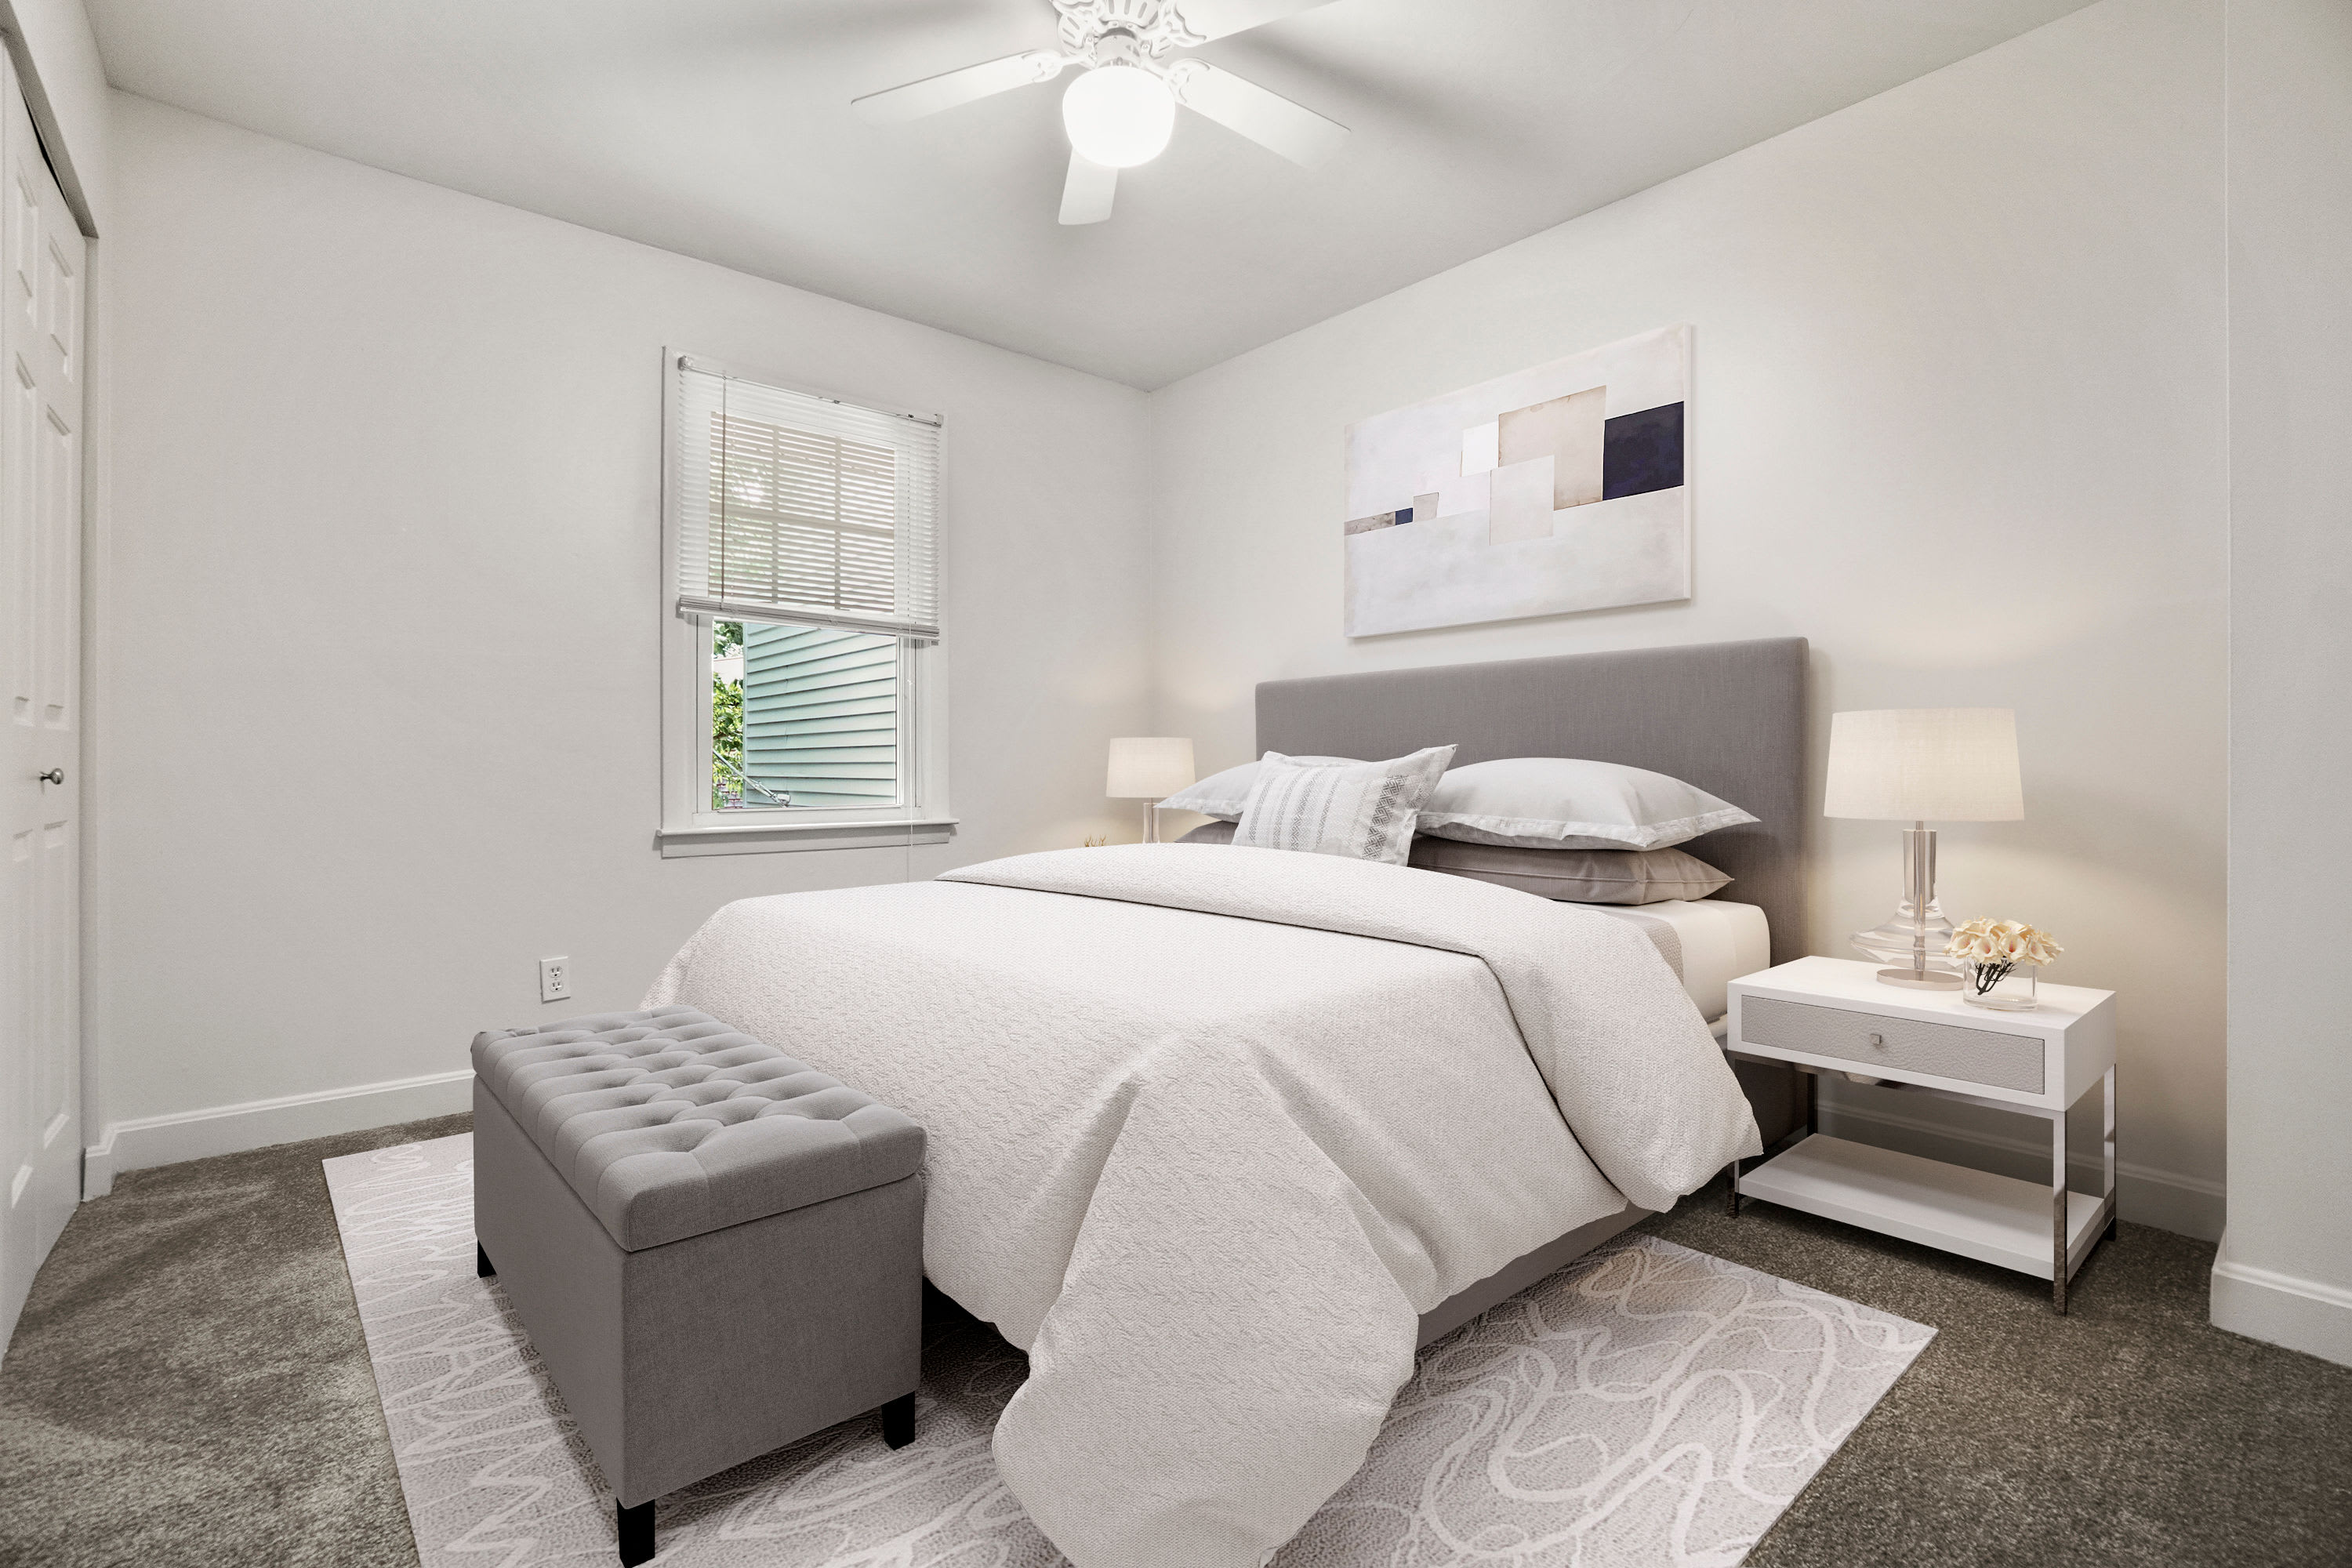 Rendered furnished bedroom at President Village in Fall River, Massachusetts